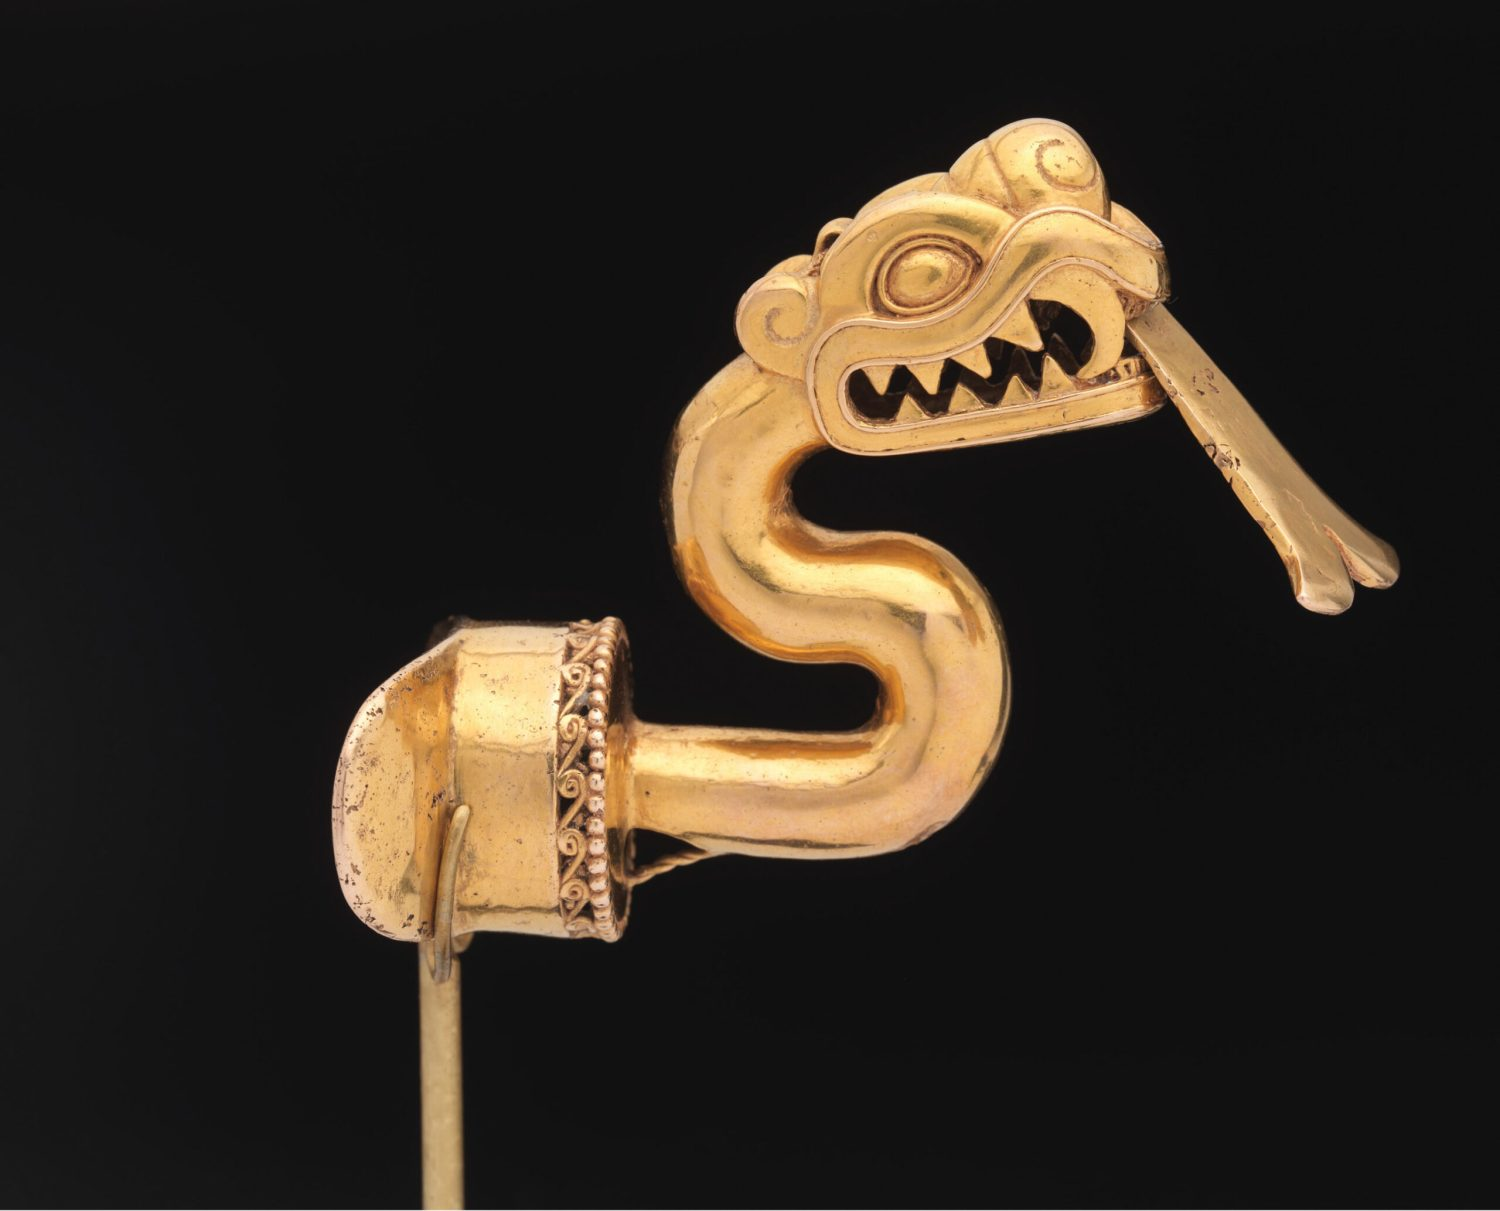 below Aztec labret (jewellery worn in a piercing below the lower lip) in the form of a serpent with an articulated tongue, from Mexico. Gold, AD 1300-1521. Size: 6.67 x 4.45 x 6.67cm